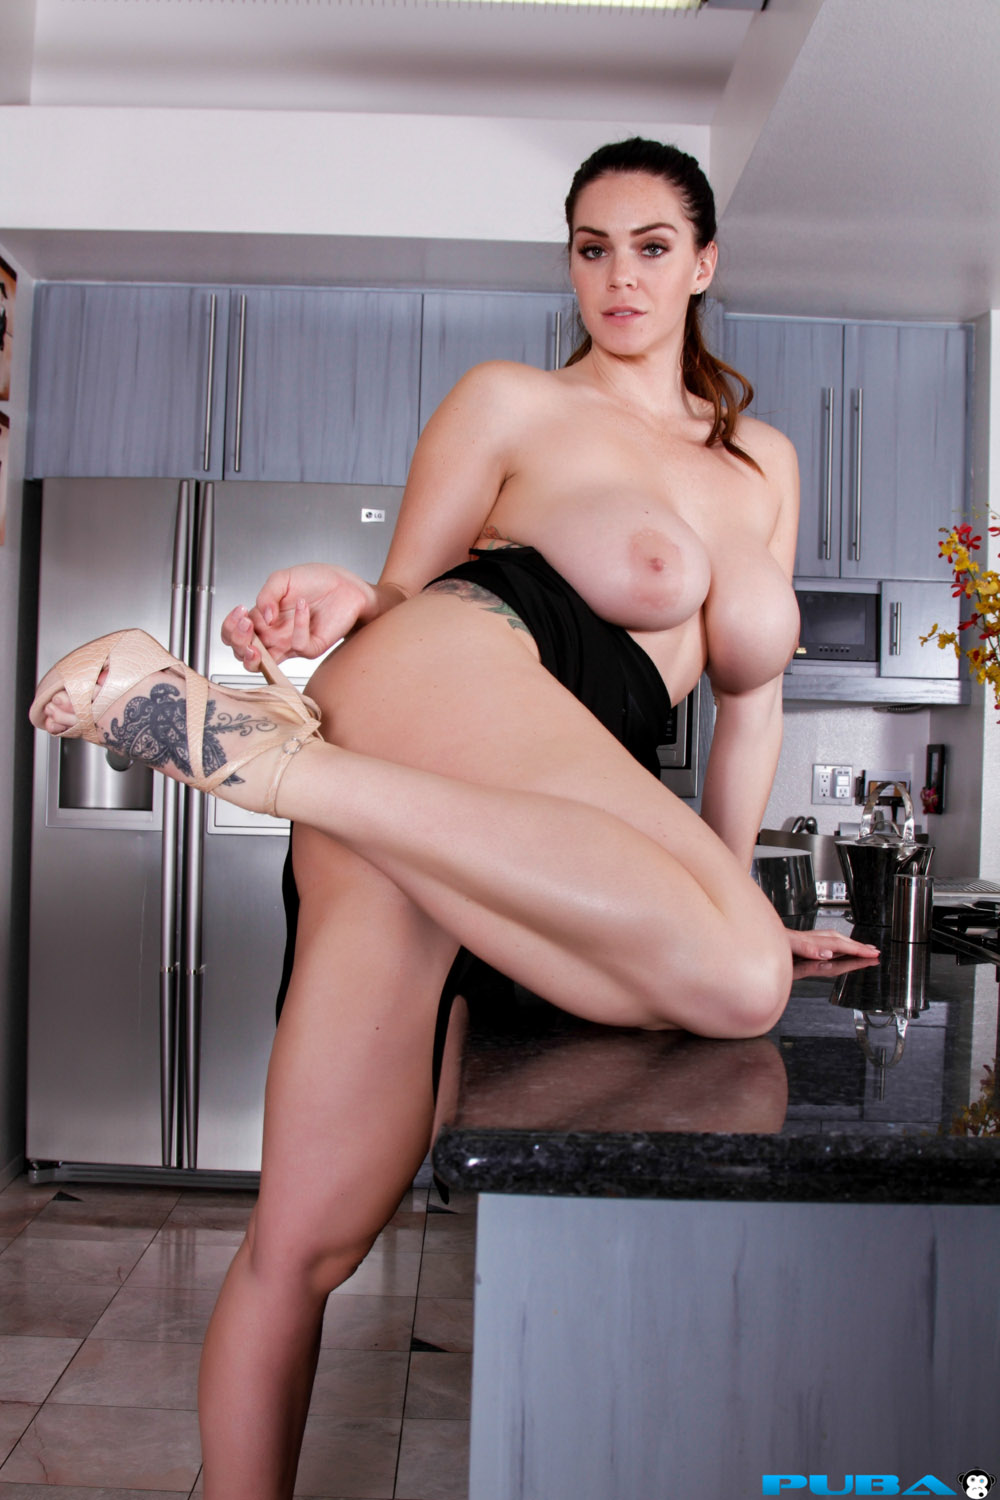 Alison Tyler Nude Pics alison tyler nude in the kitchen - foxhq